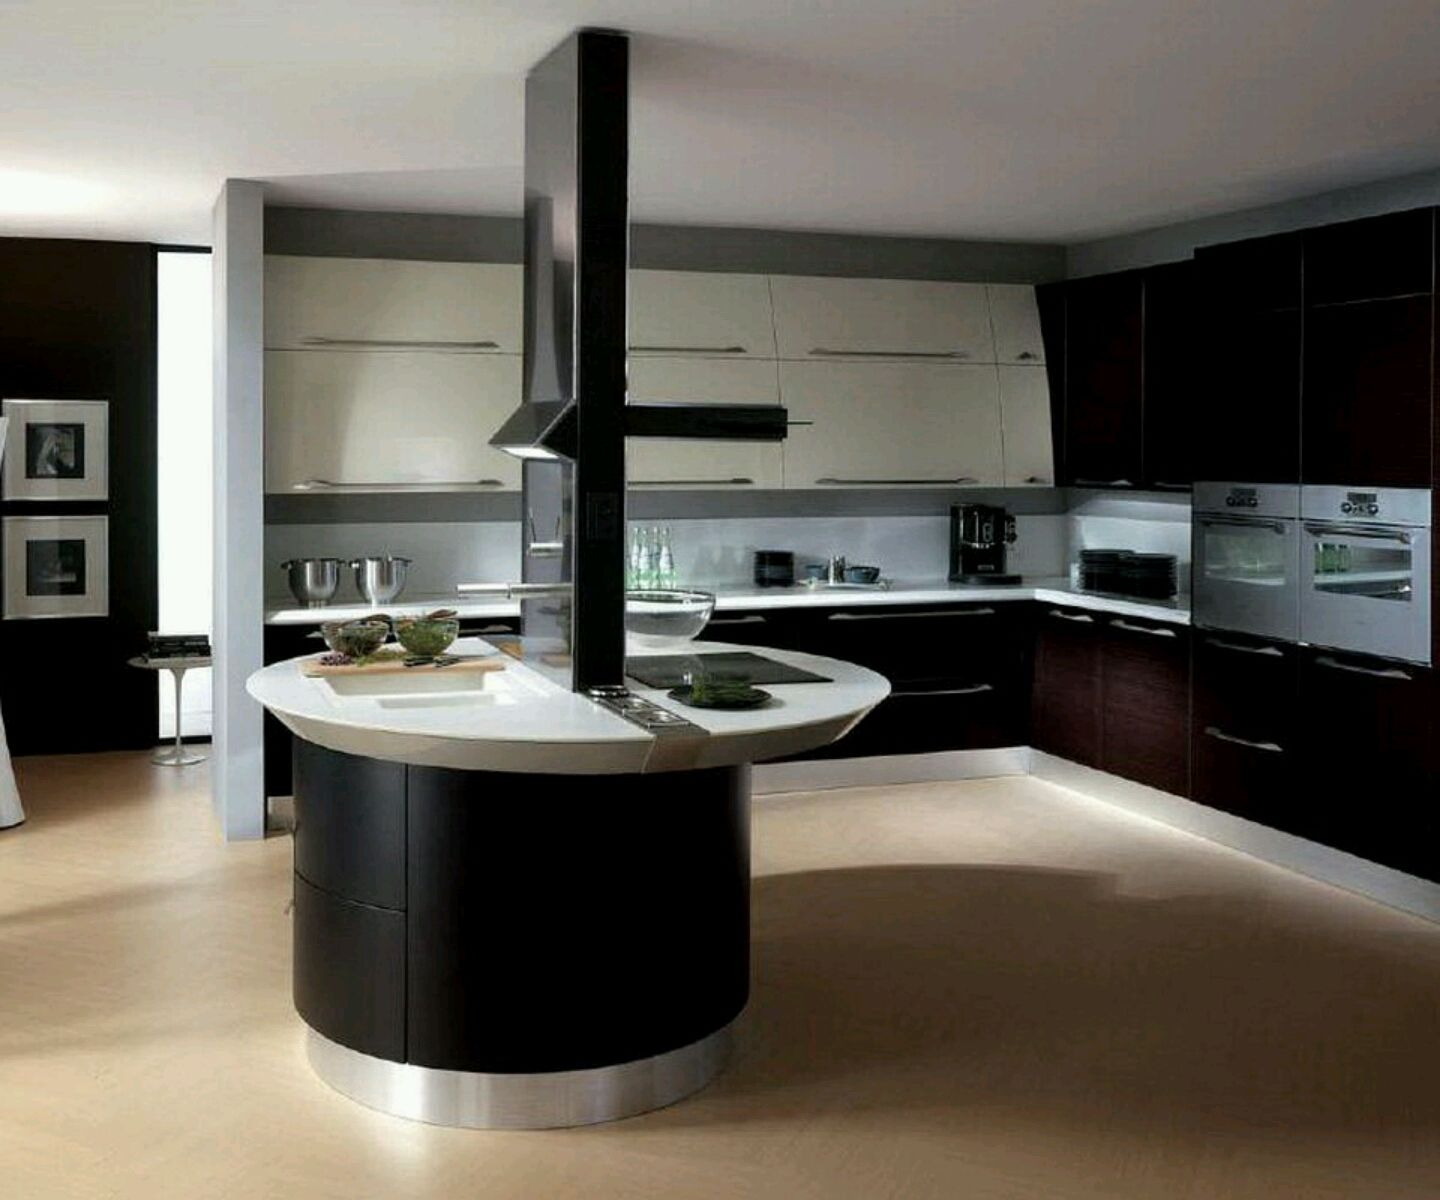 Luxury Modern Kitchen Designs Decoration Adorable Smart Kitchen Islands  Buscar Con Google  Arquitectura Y . Design Ideas